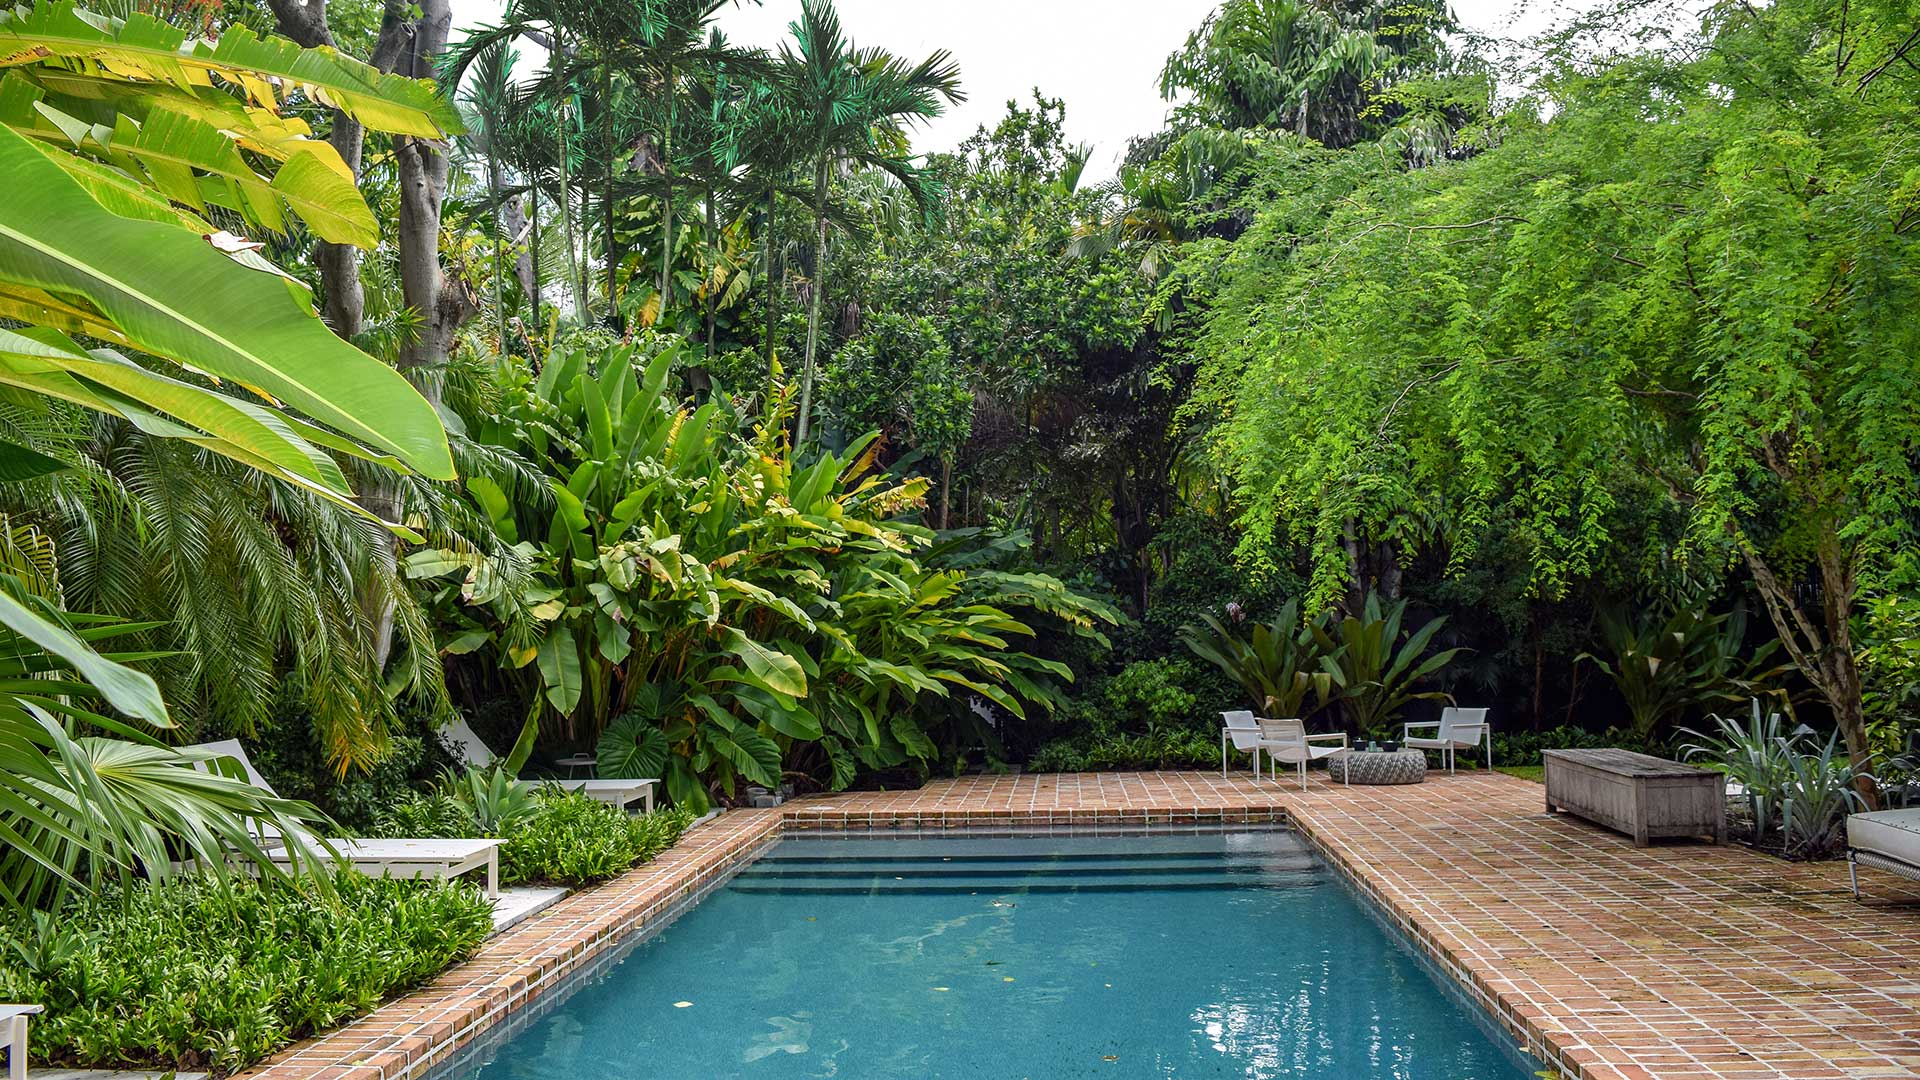 pool in yard with trees surrounding